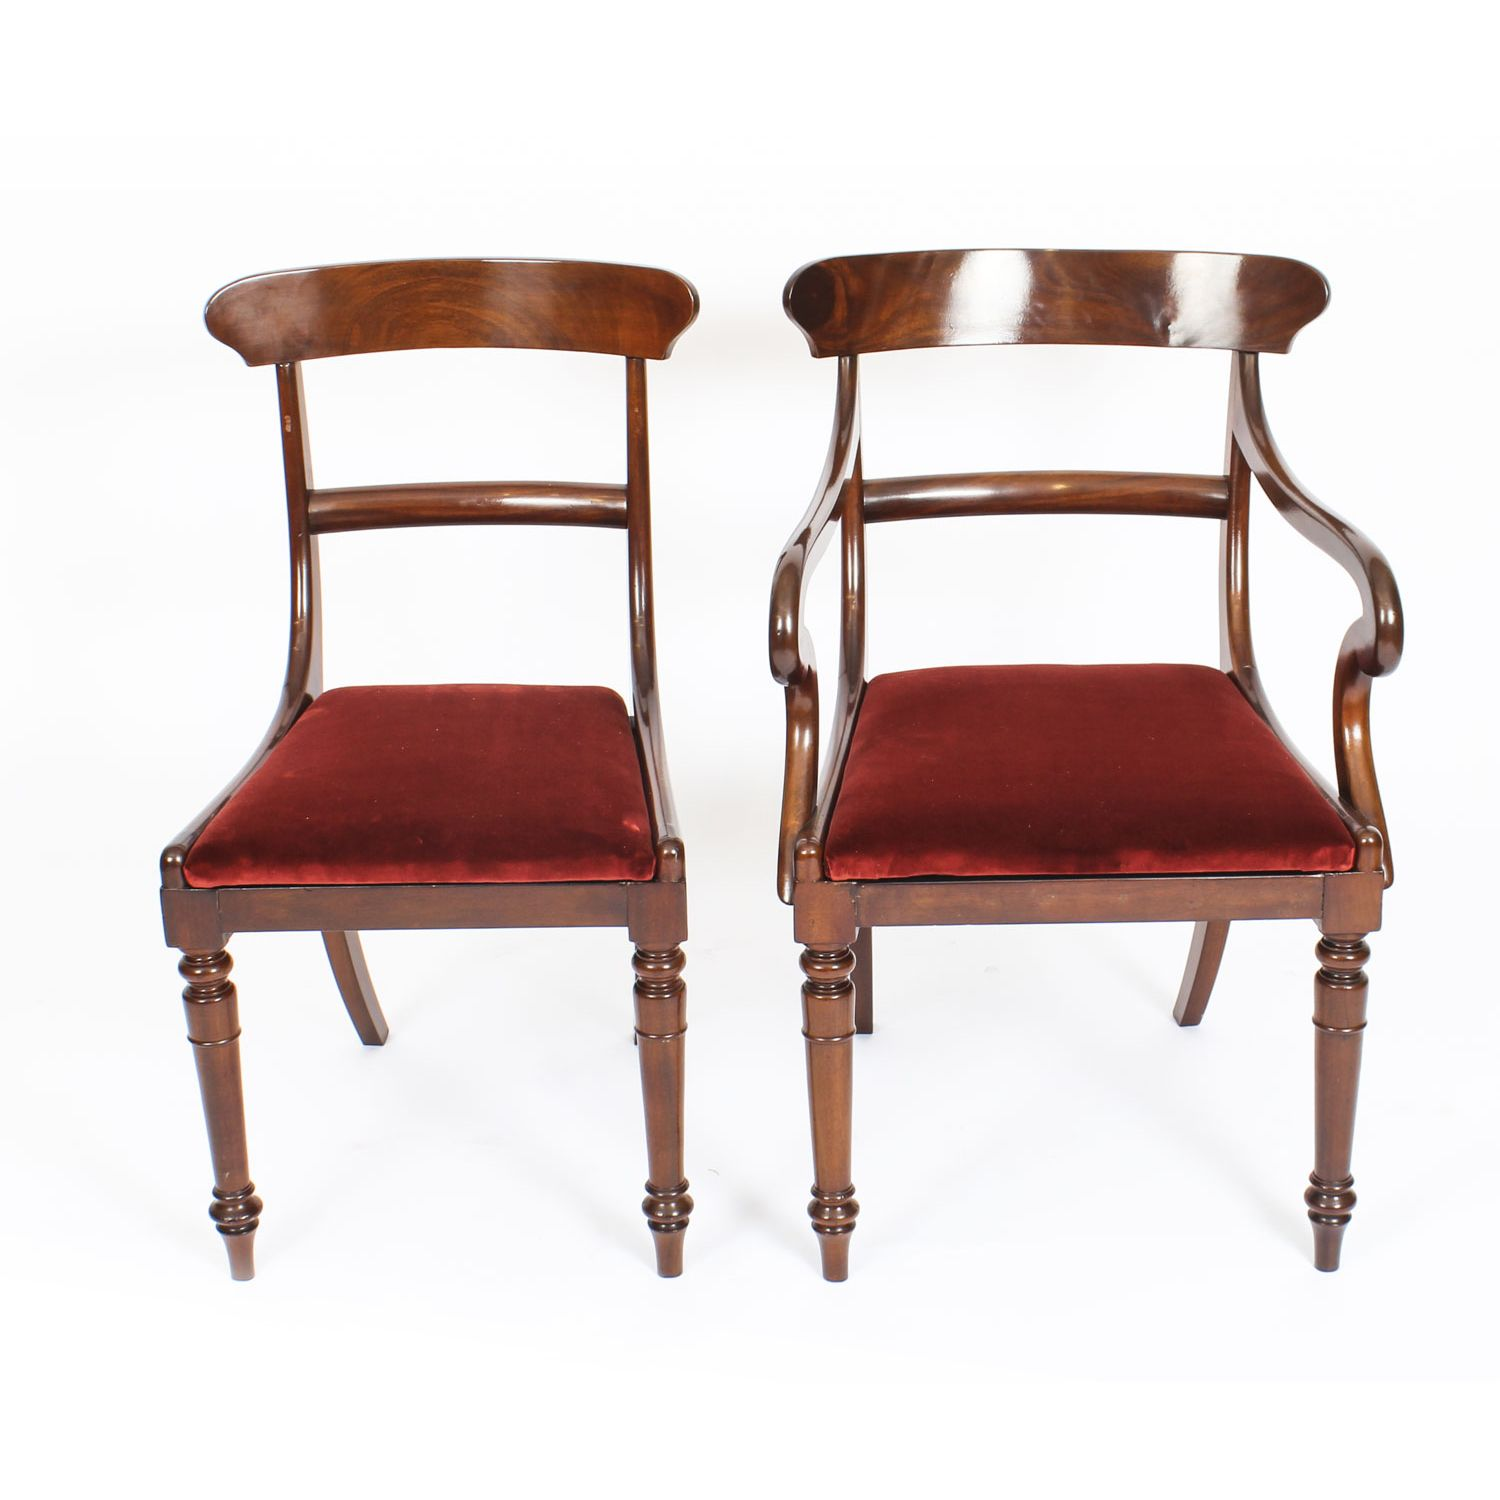 Antique Pair of Mahogany Desk Chairs 19th C